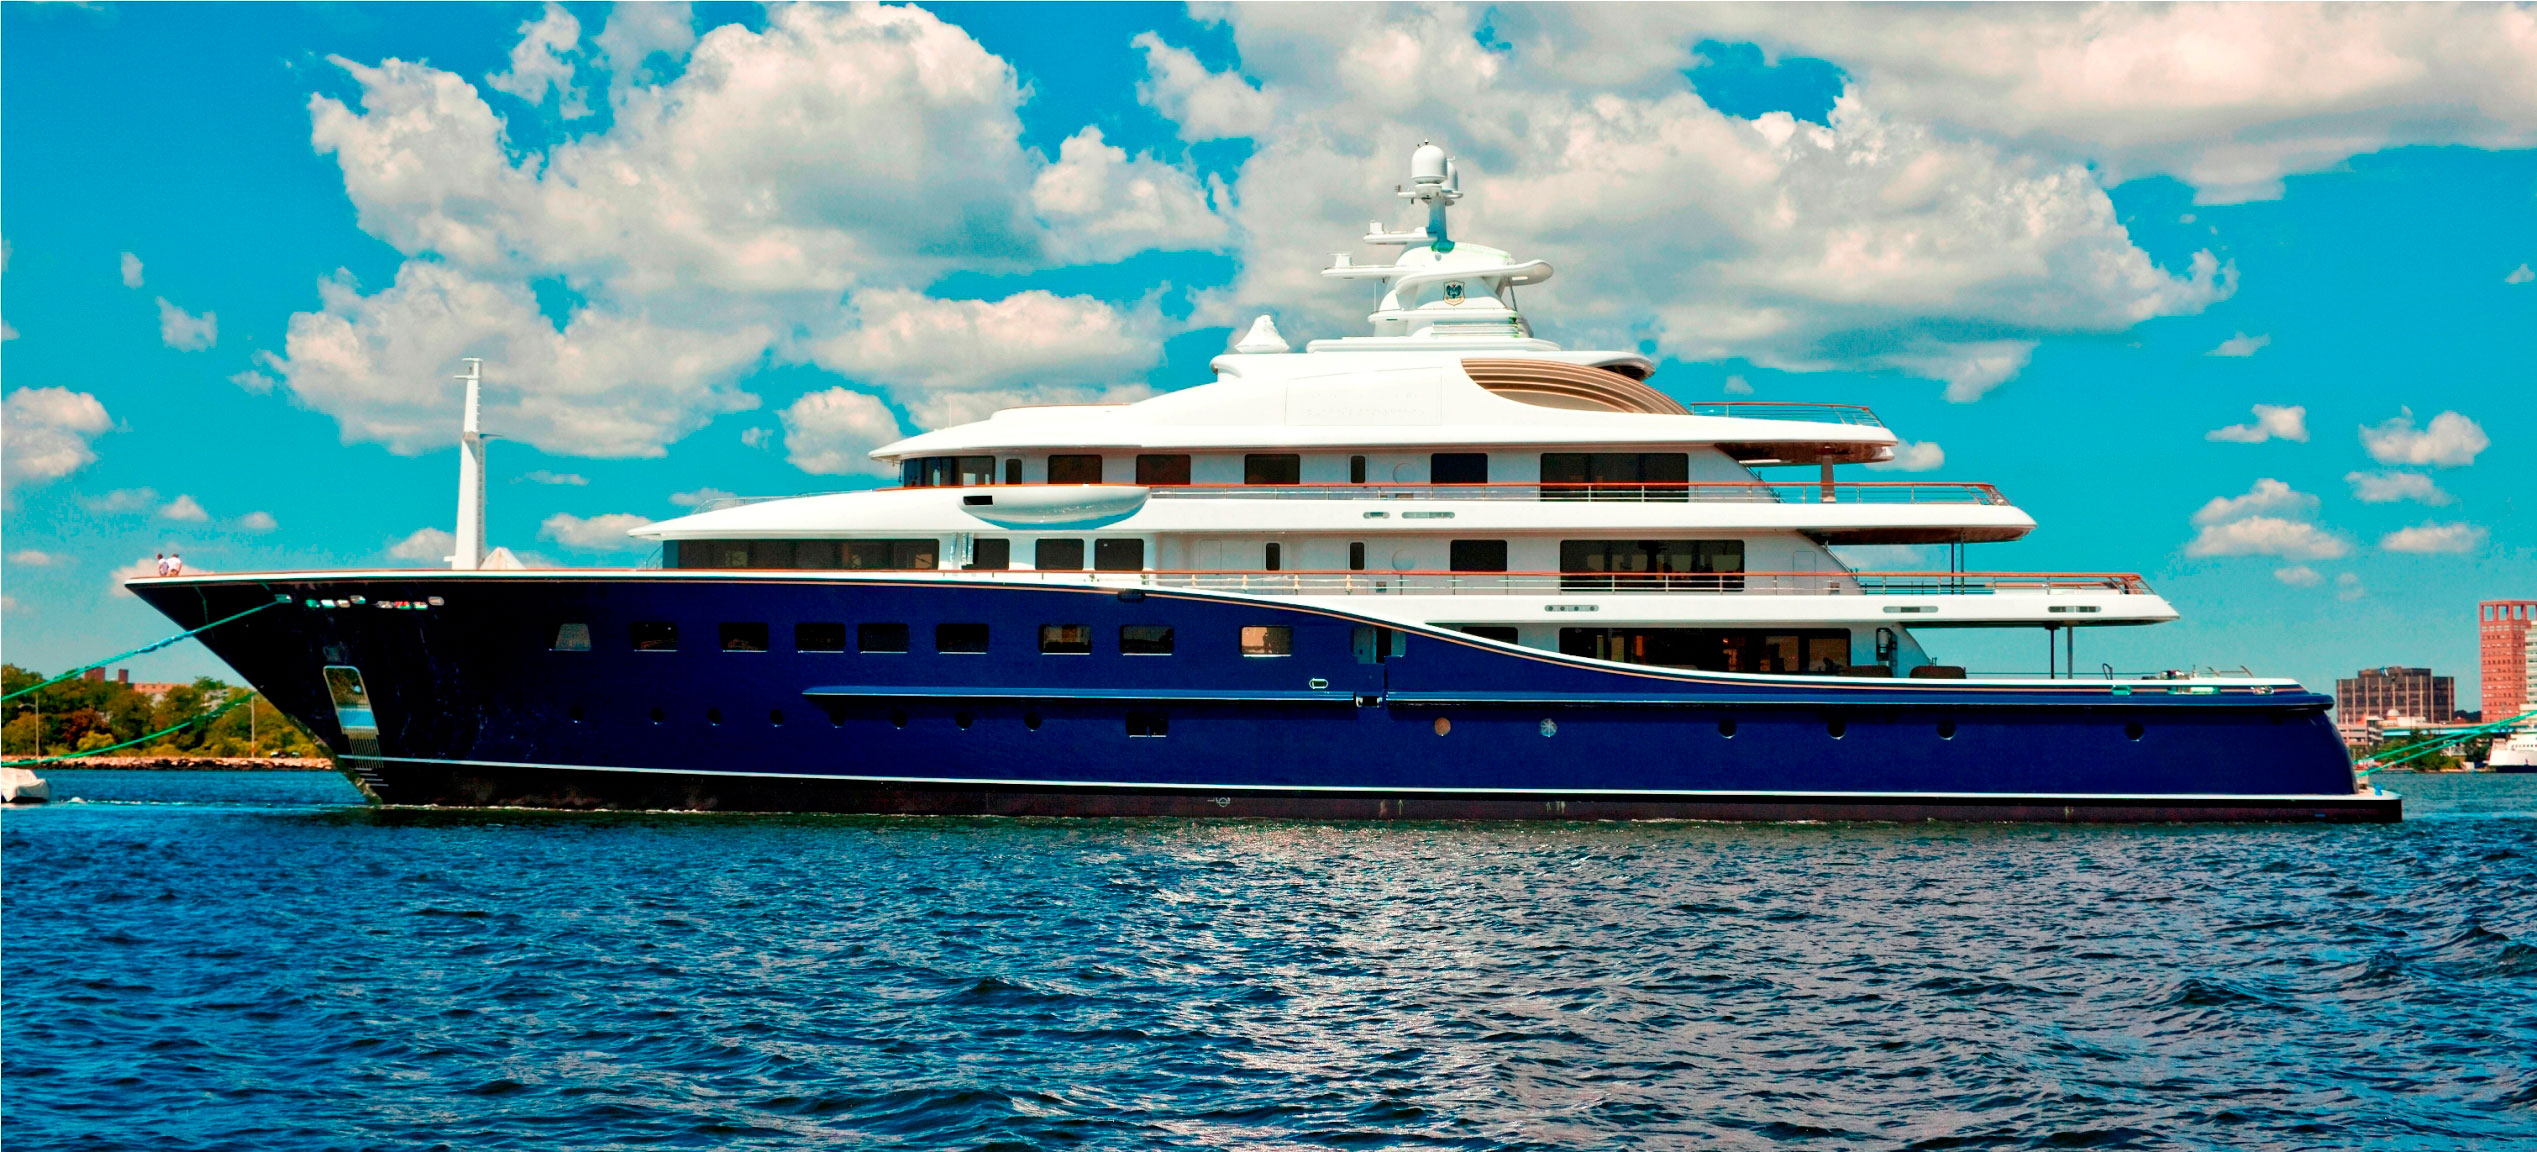 Derecktor Launches 85m Superyacht Cakewalk – Largest Motor Yacht Built in US